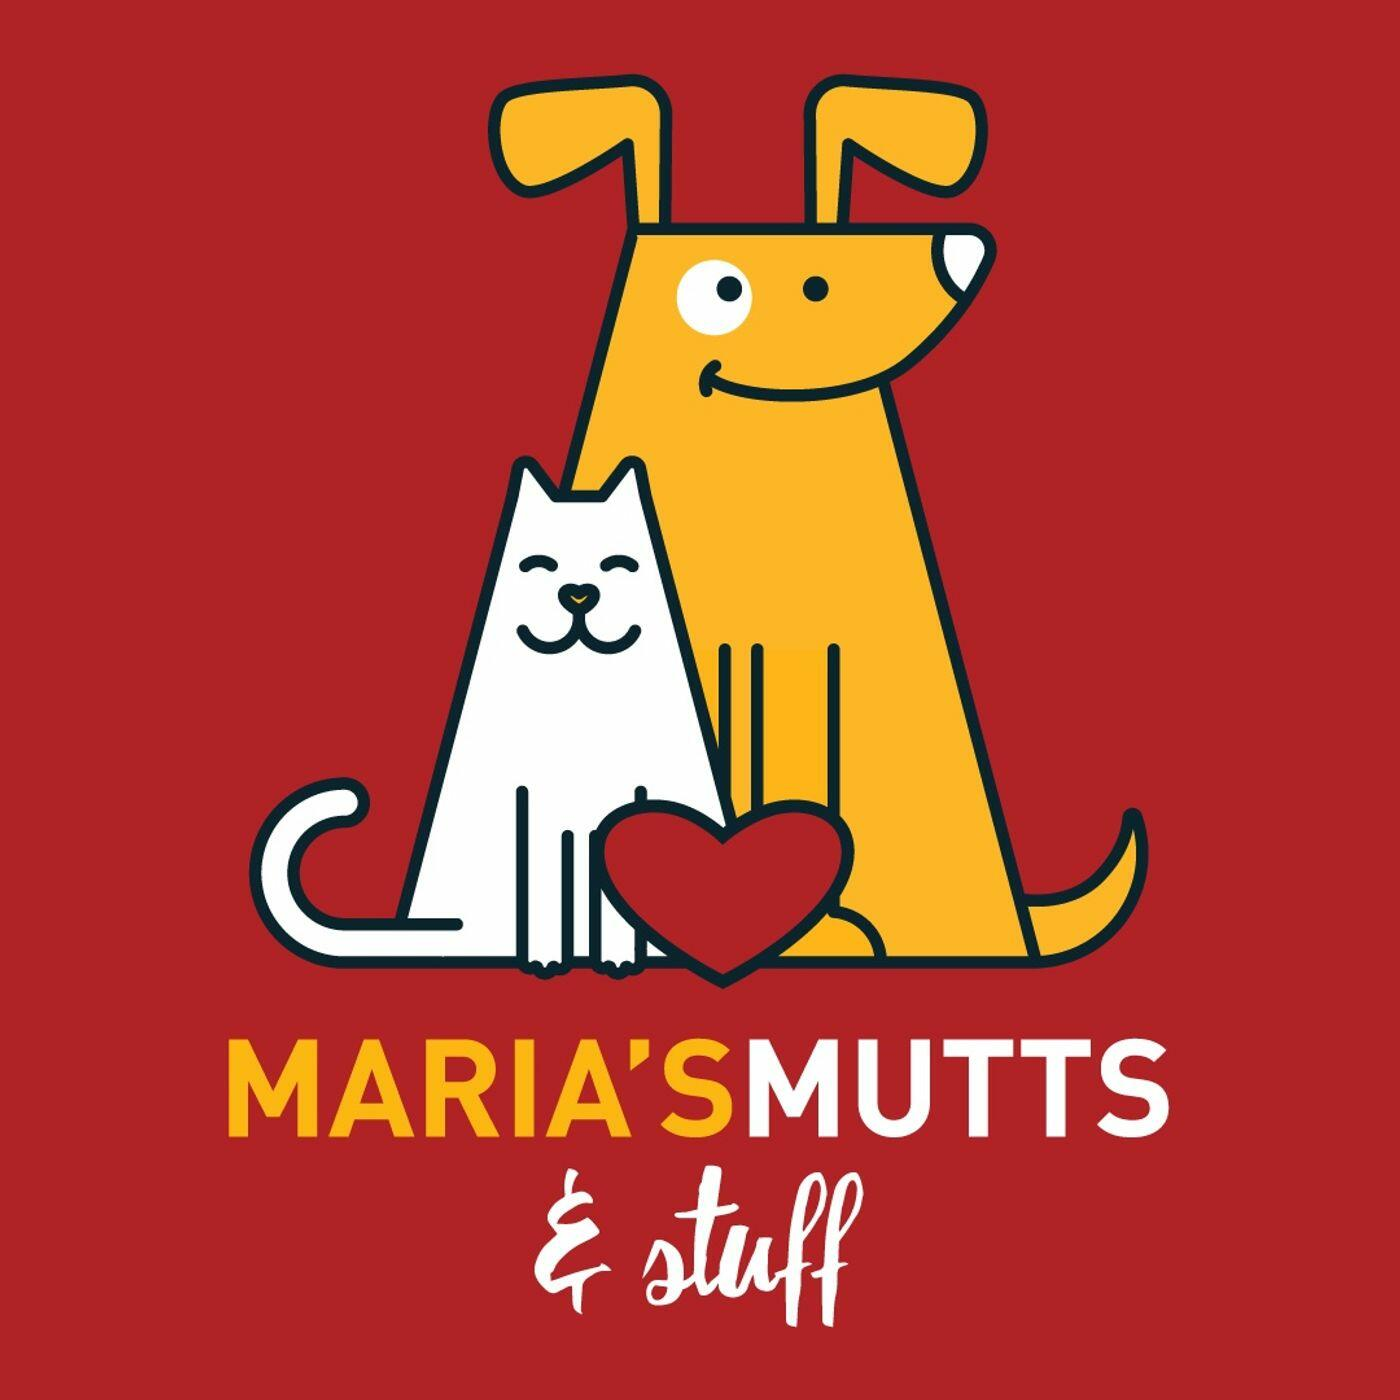 Maria's Mutts & Stuff